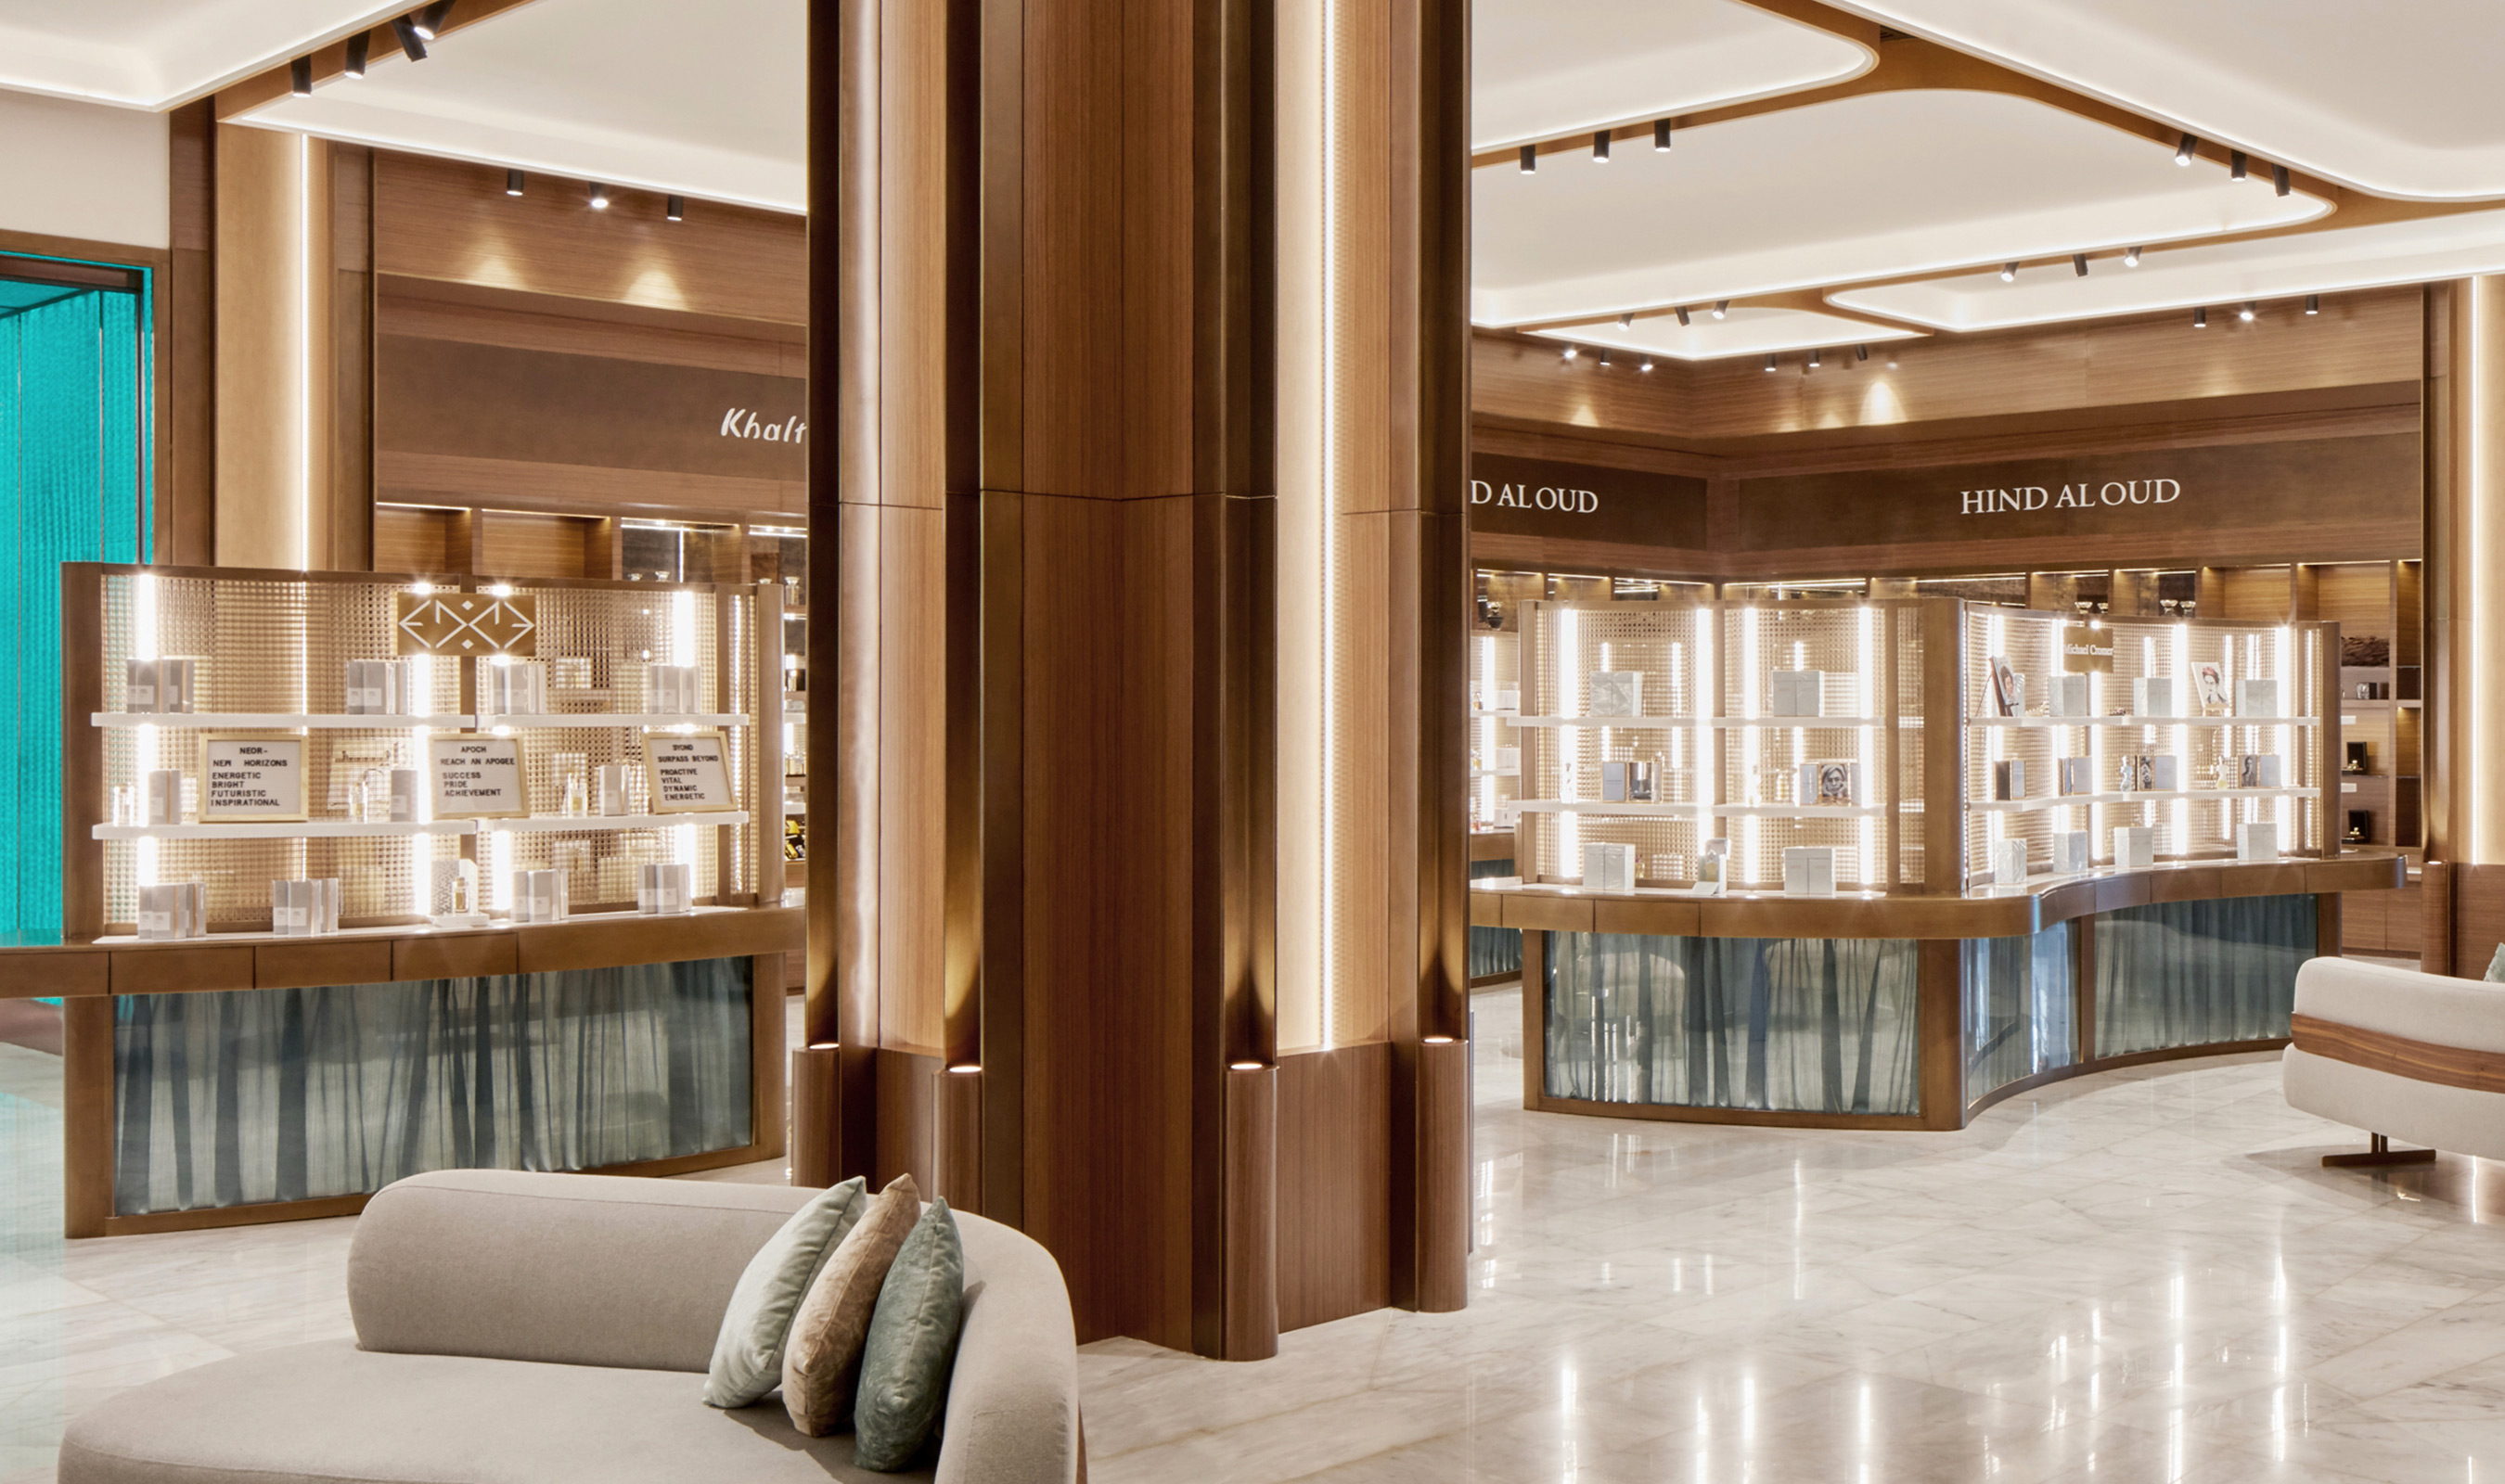 At the HOB luxury store in Dalma Mall, Abu Dhabi, Banker Wire's M22-22 woven wire mesh in brass is used at retail displays.